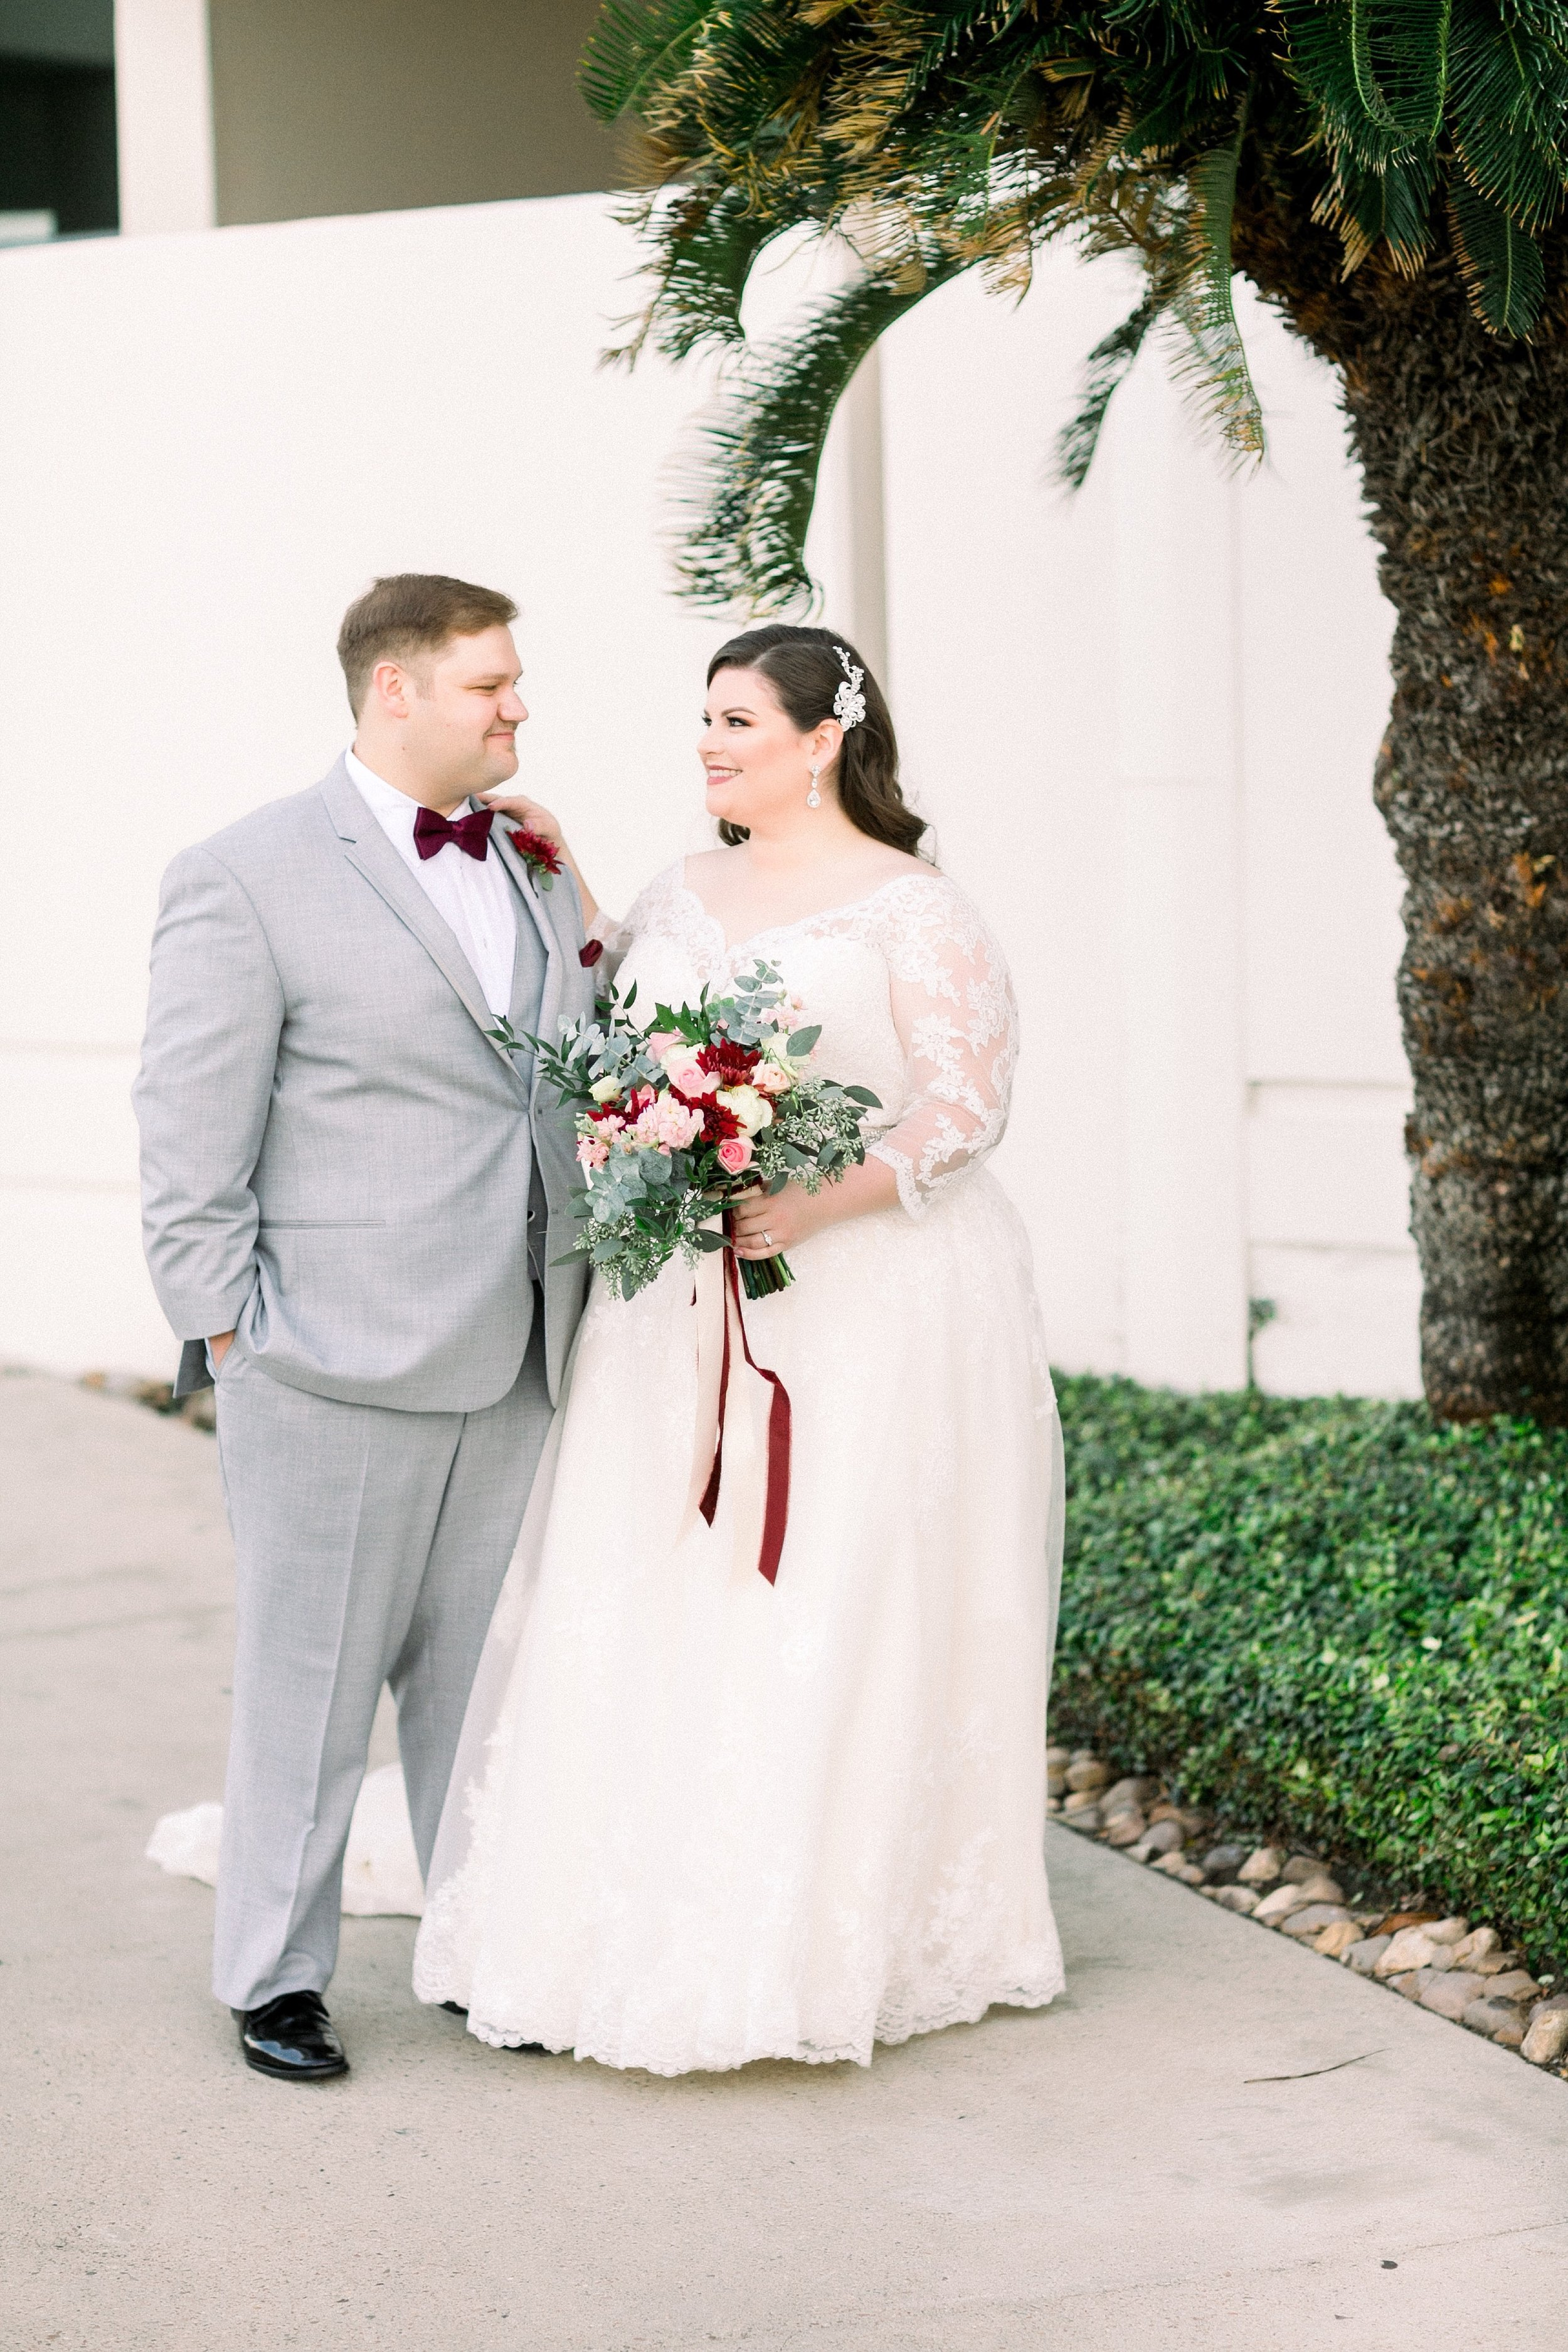 gaslight-at-courtyard-square-corpus-christi-wedding-omni-hotel-fall-winter-wedding-texas-wedding-photographer-lauren-pinson-0032.jpg